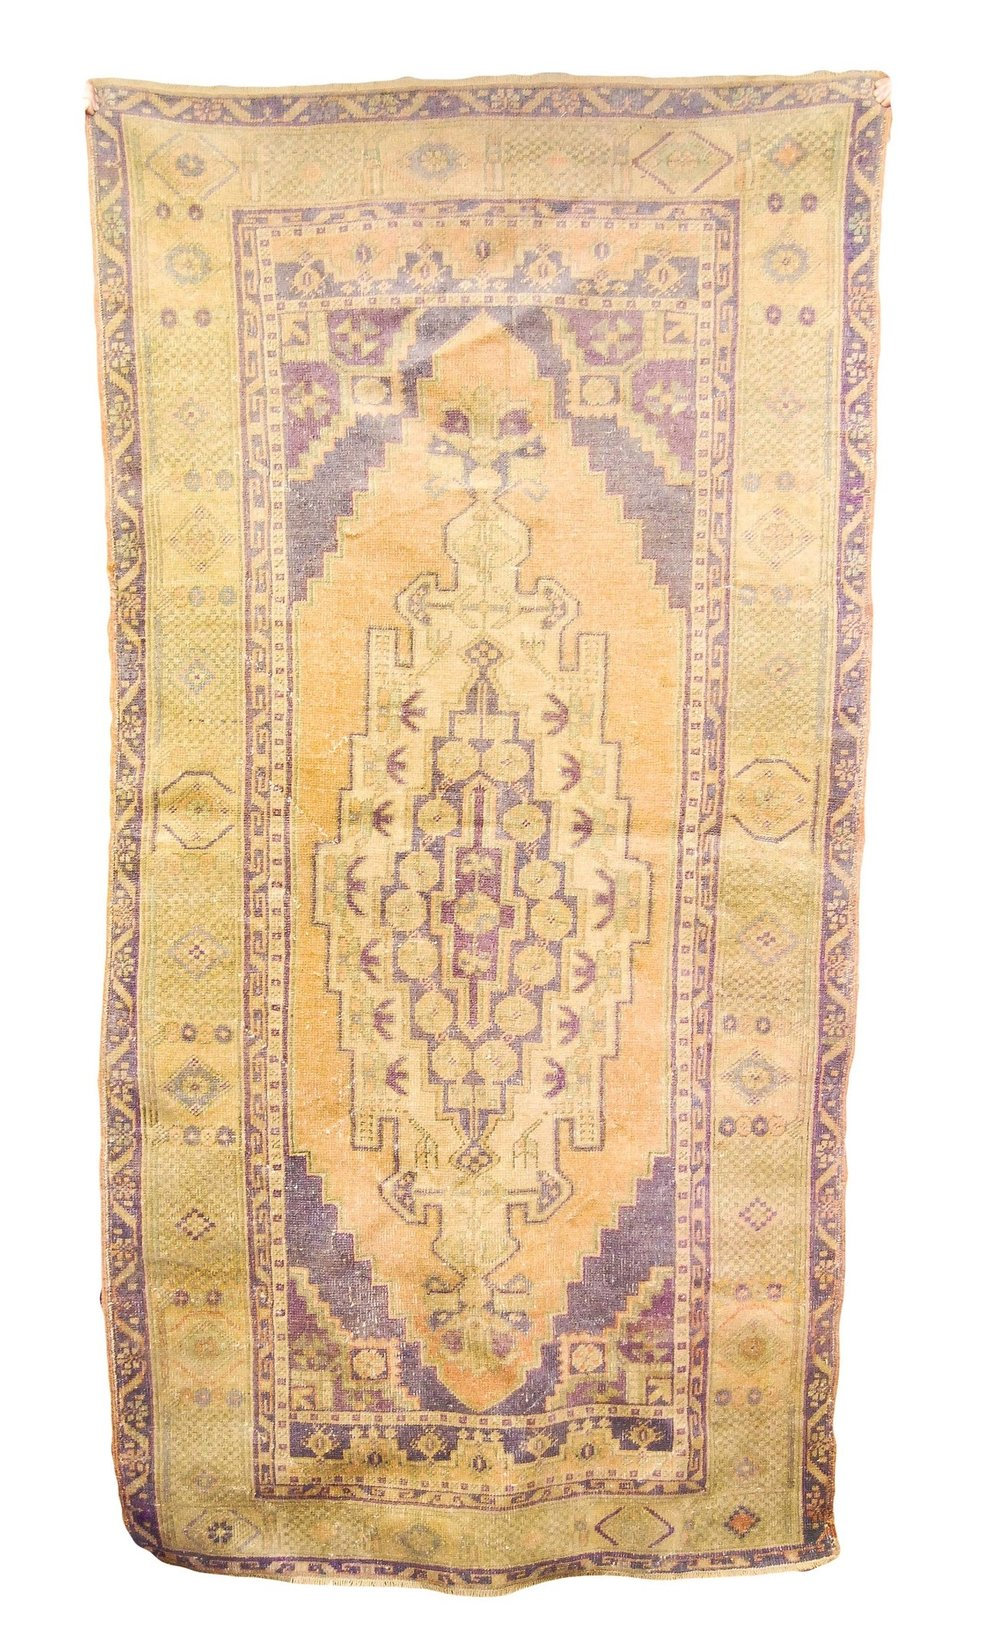 KULA Turkish Rug